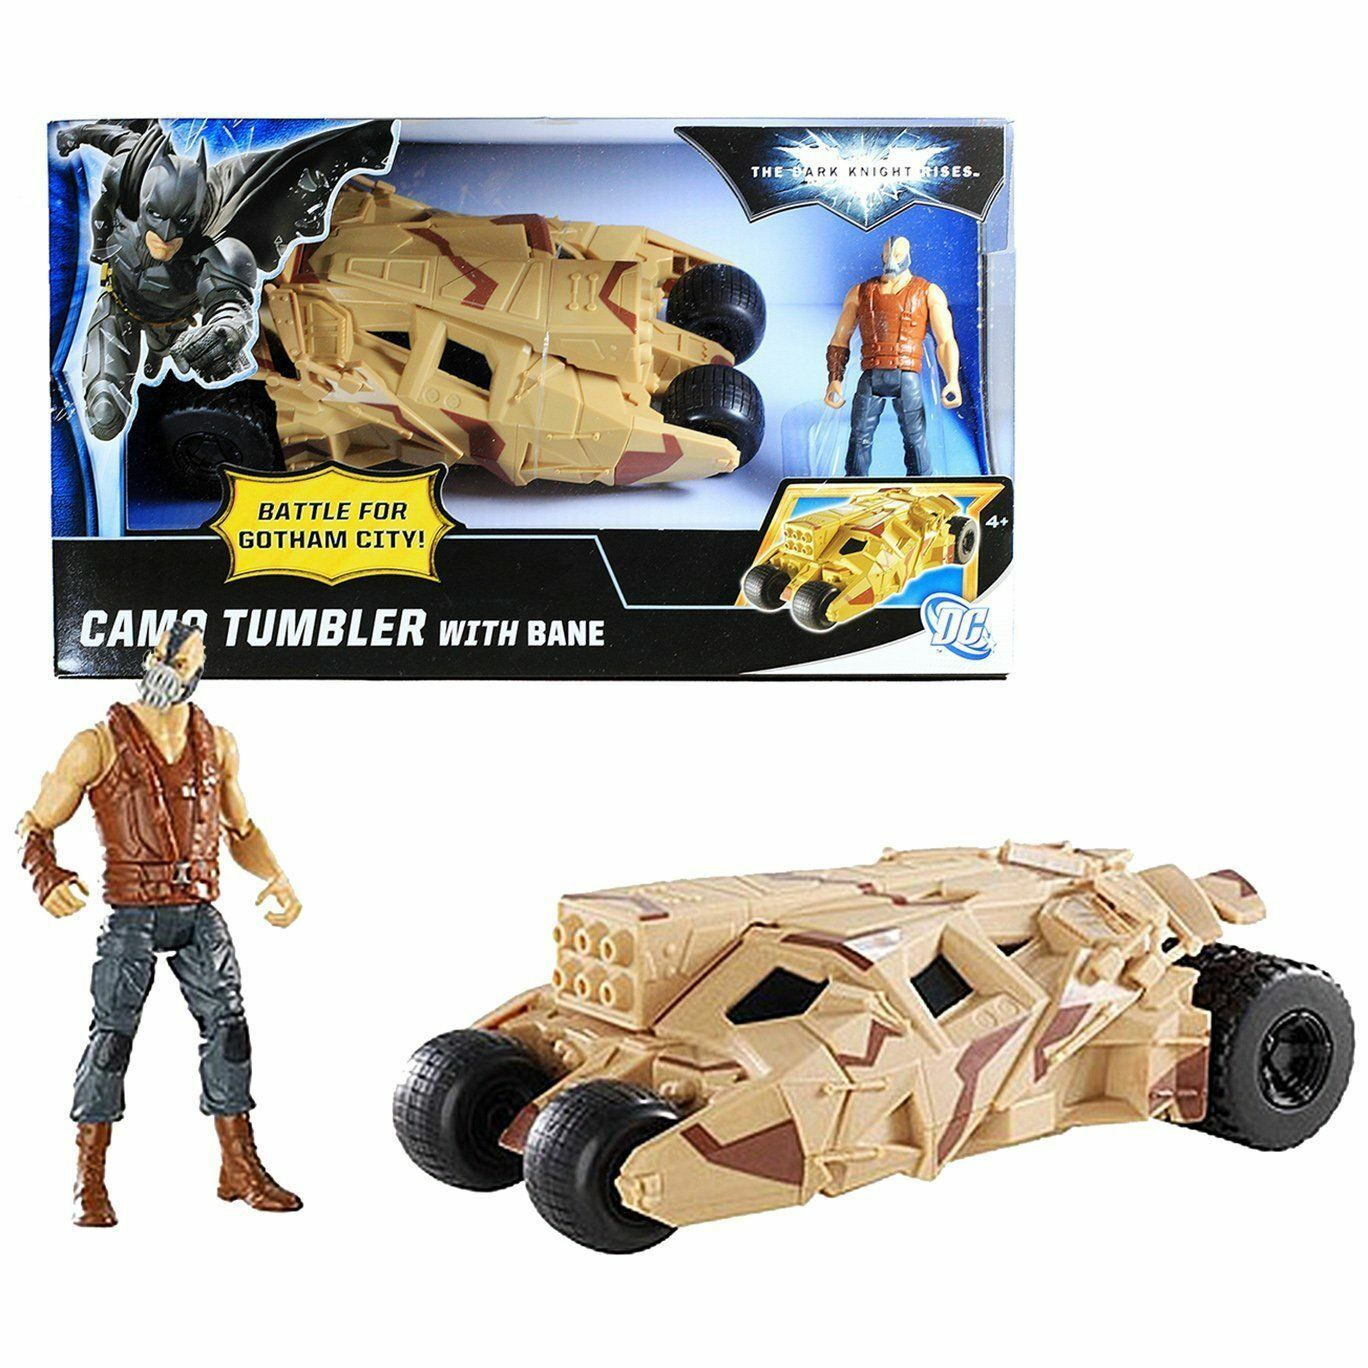 Dark Knight Rises - Camo Tumbler with Bane Action Figure   Vehicle